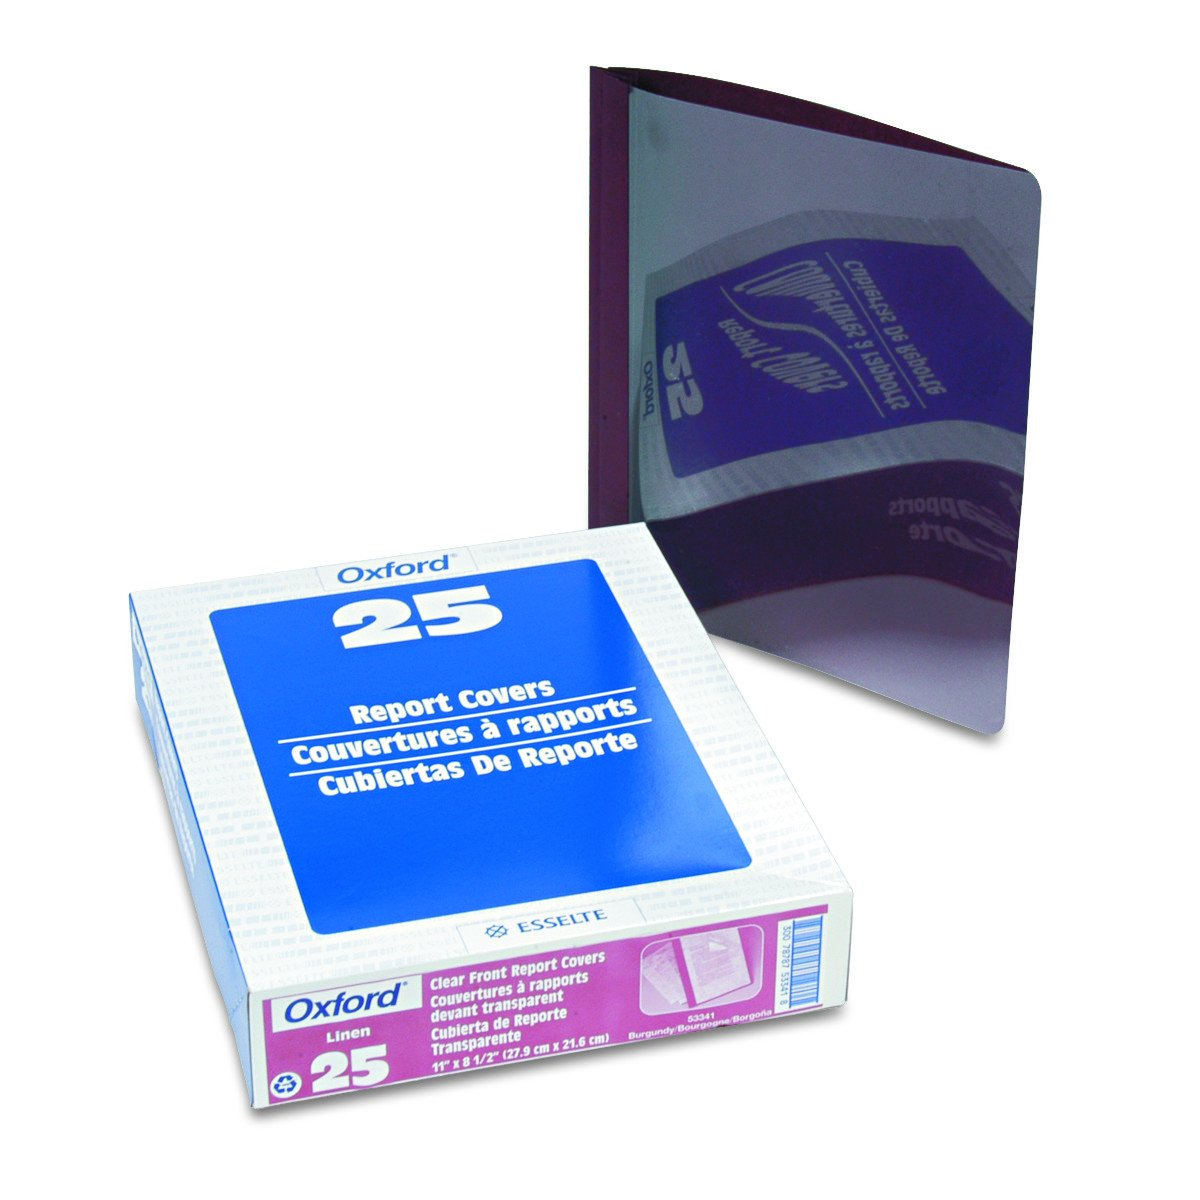 Oxford 53341 Clear Front Report Cover, 3-Prong, 1/2 Capacity, Burgundy Back Cover, 25/box by Oxford (Image #1)